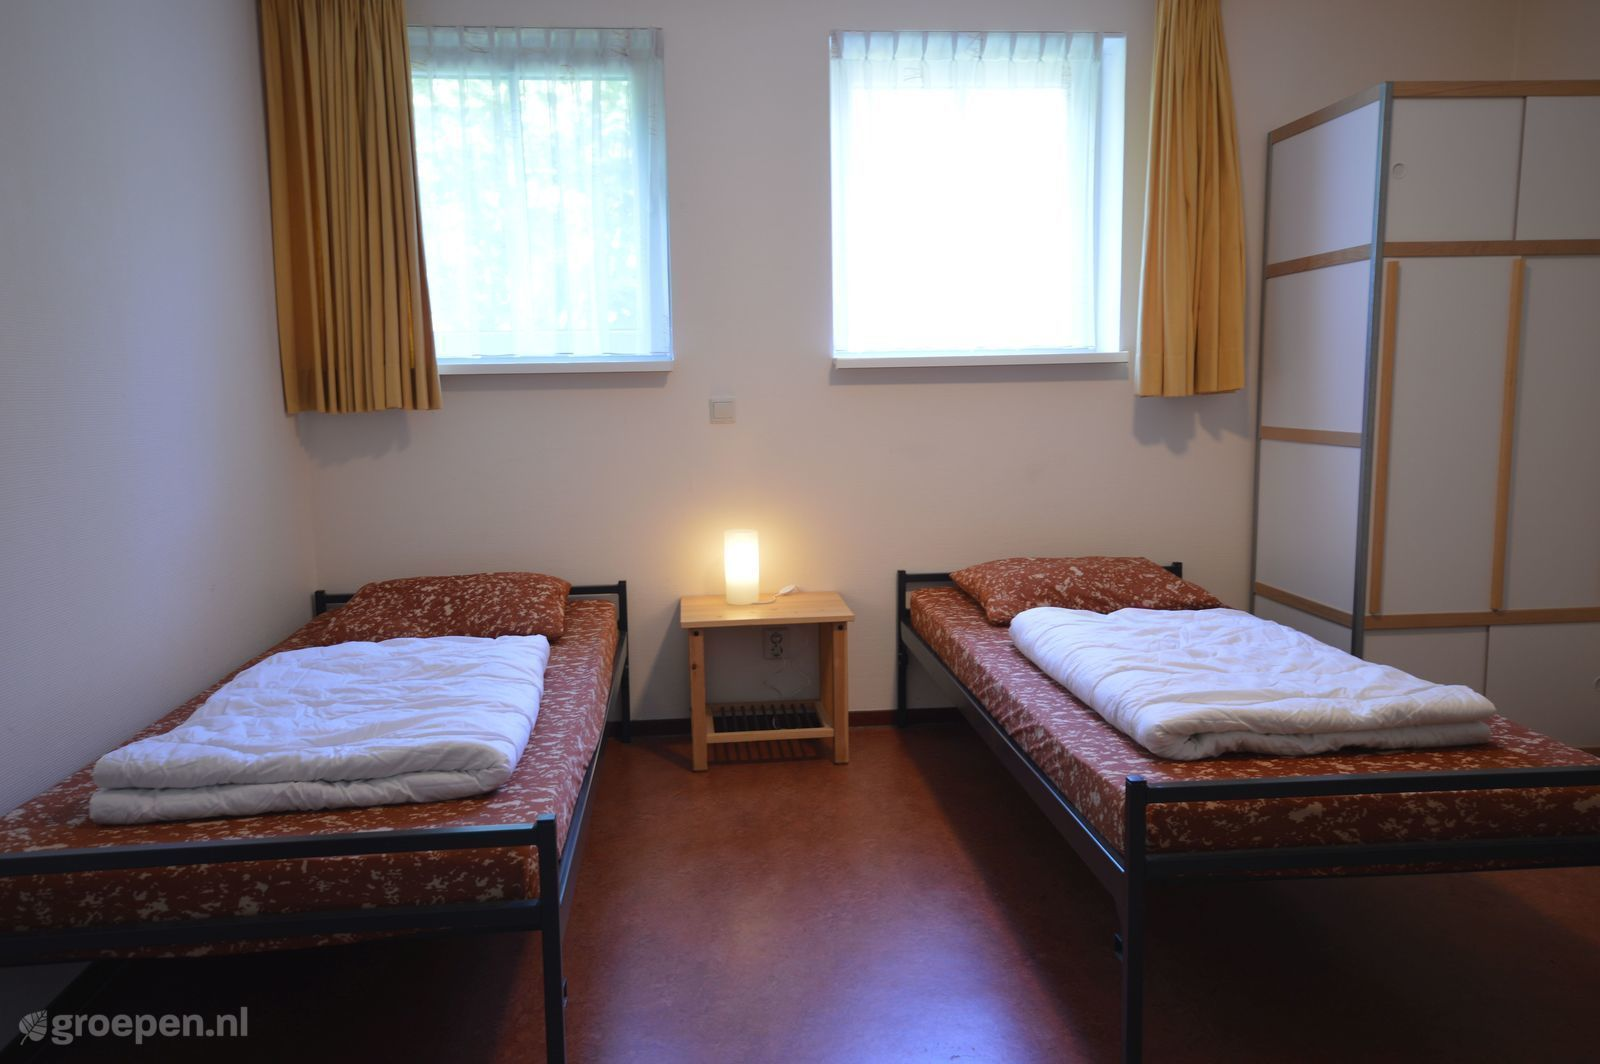 Group accommodation Lettele